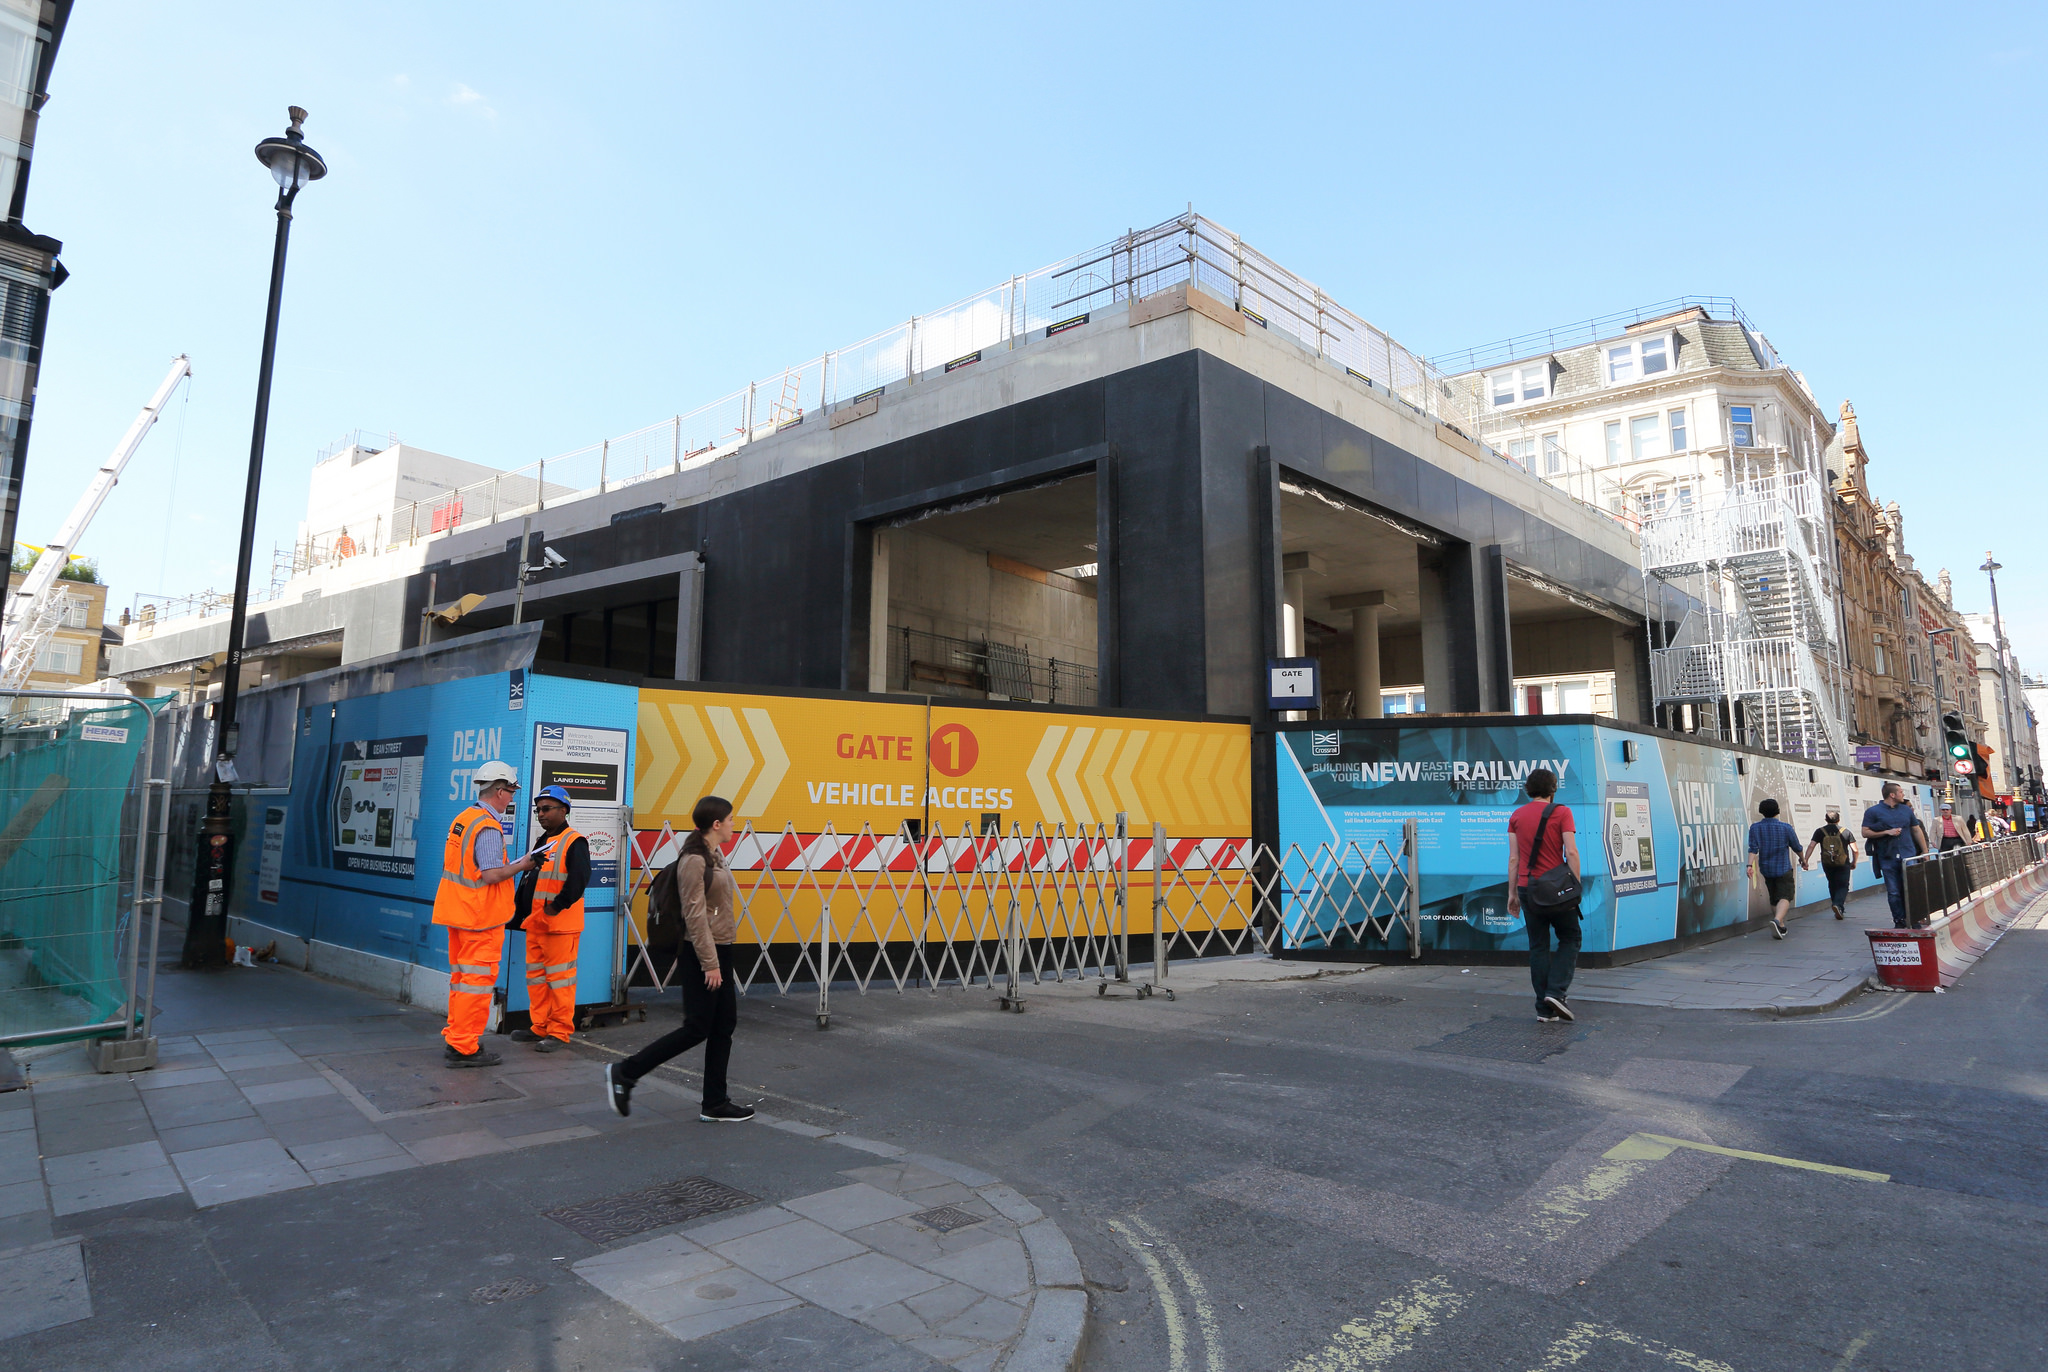 Photo of Dean Street worksite from Oxford Street showing site hoardings including vehicle access gate